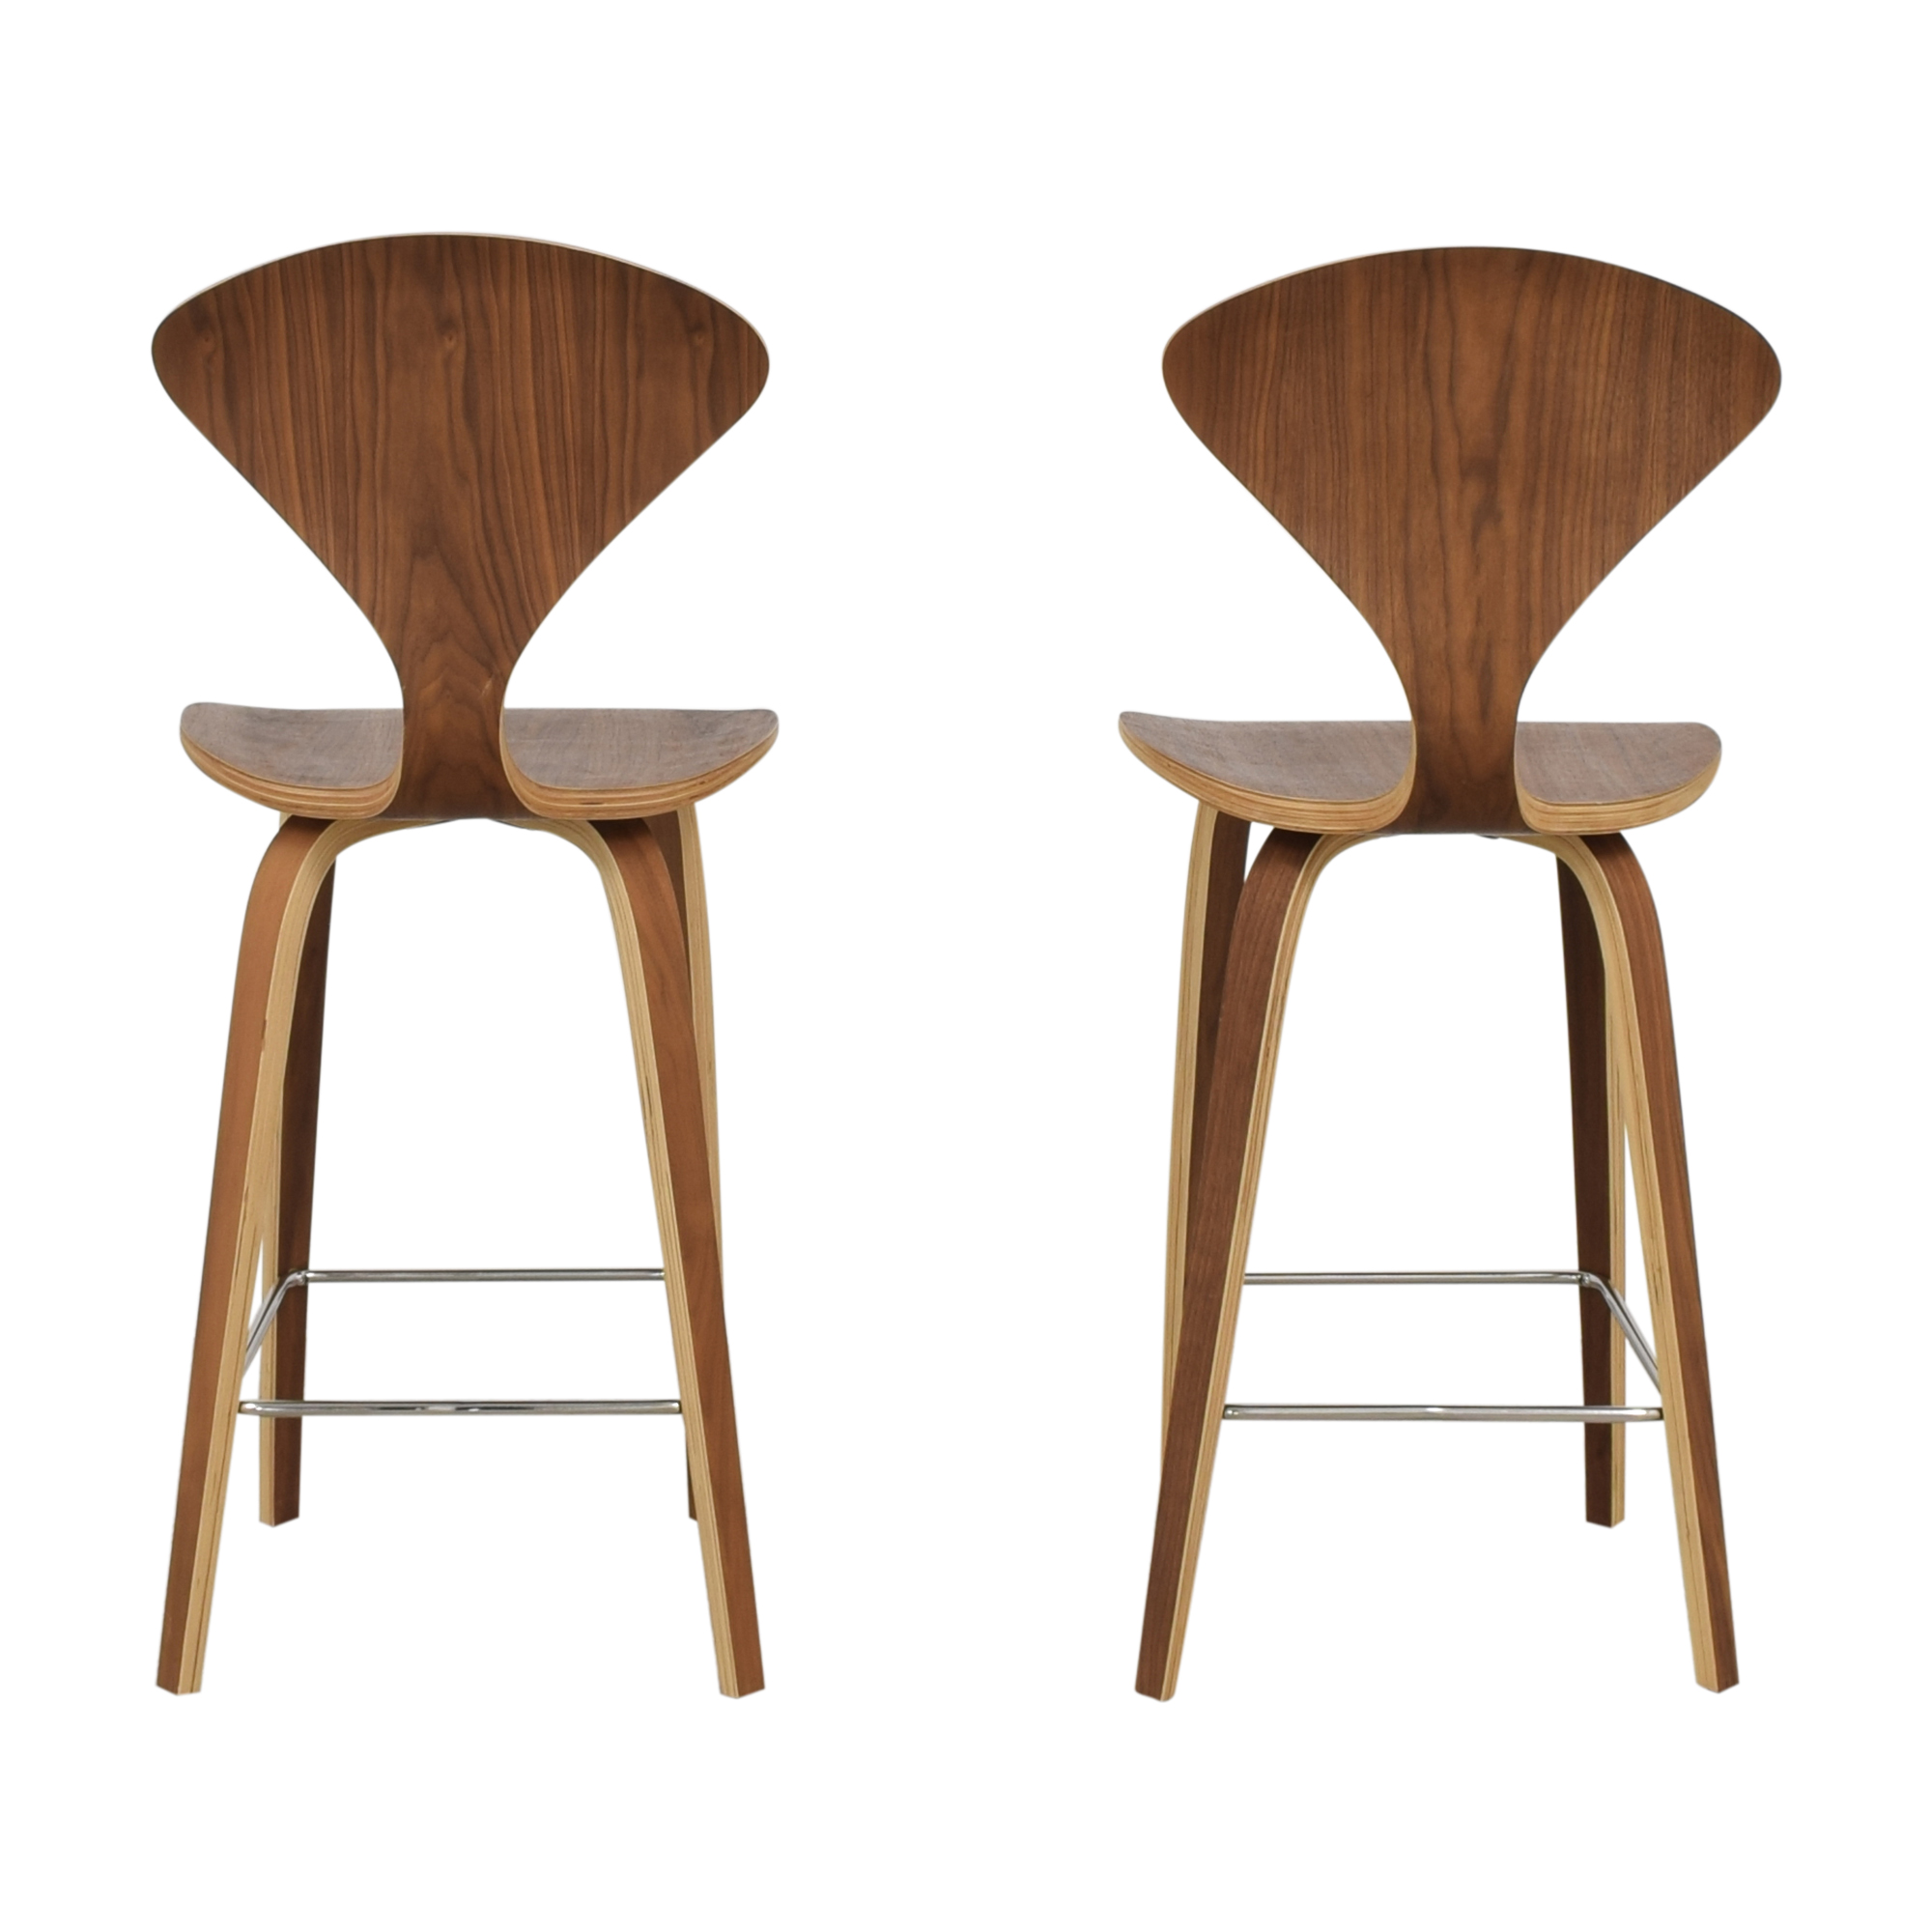 Rove Concepts Norman Counter Stools / Chairs